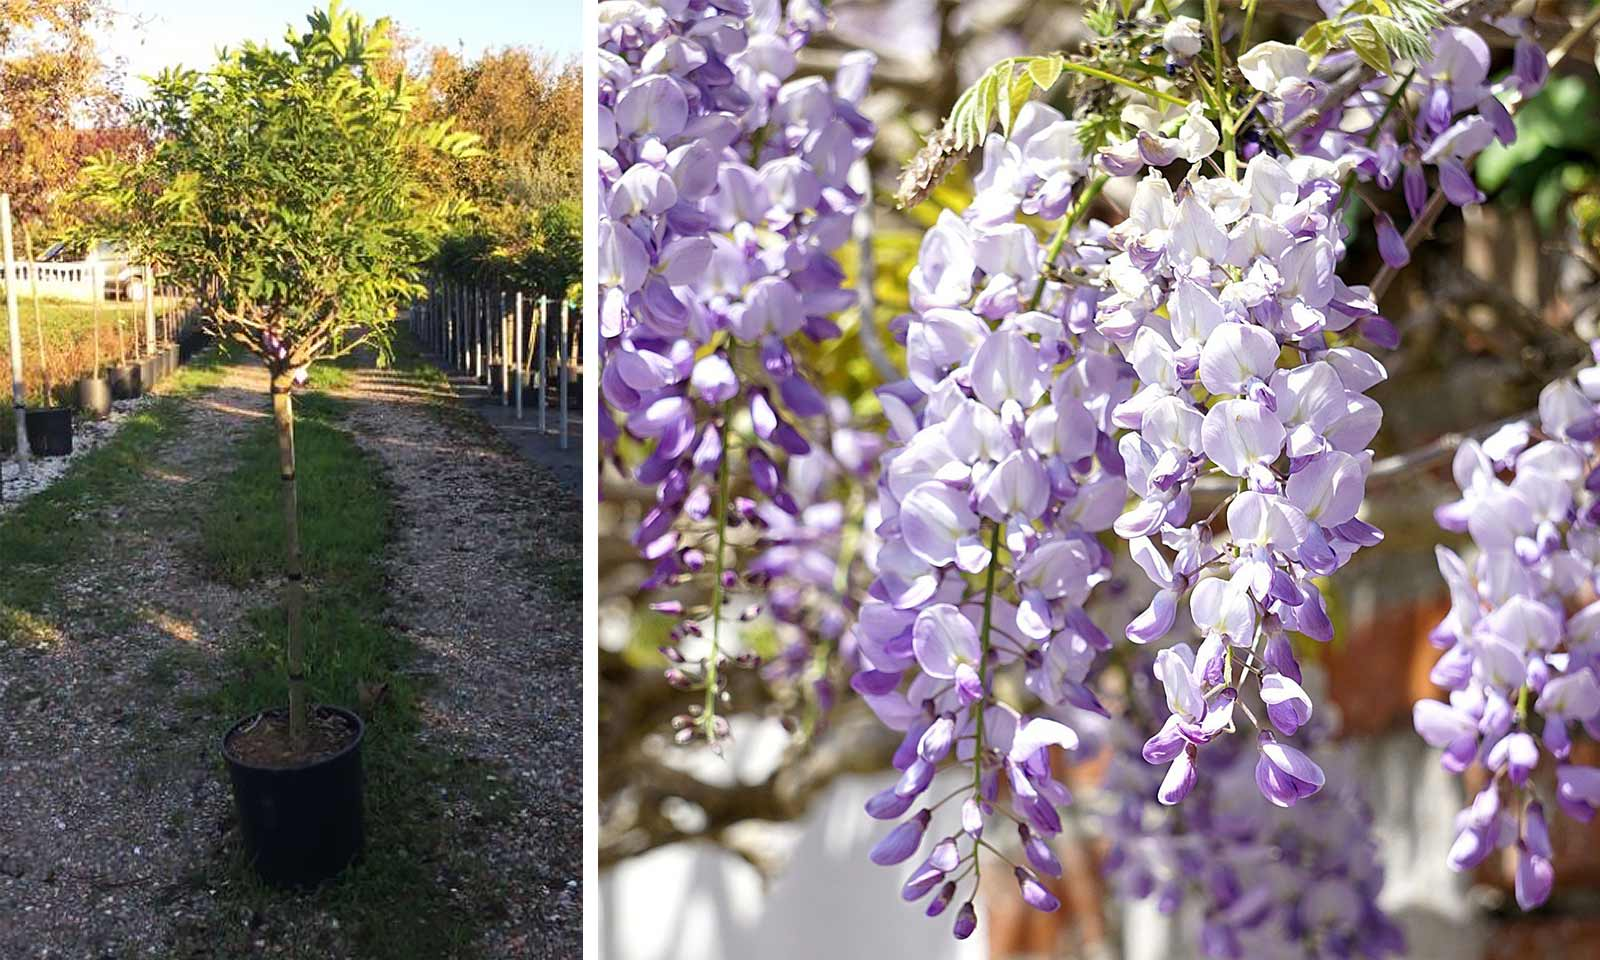 Grafted 6ft Tall Supplied in a 7.5 Litre Pot Extra Large Wisteria Sinensis Prolific Climbing Plant